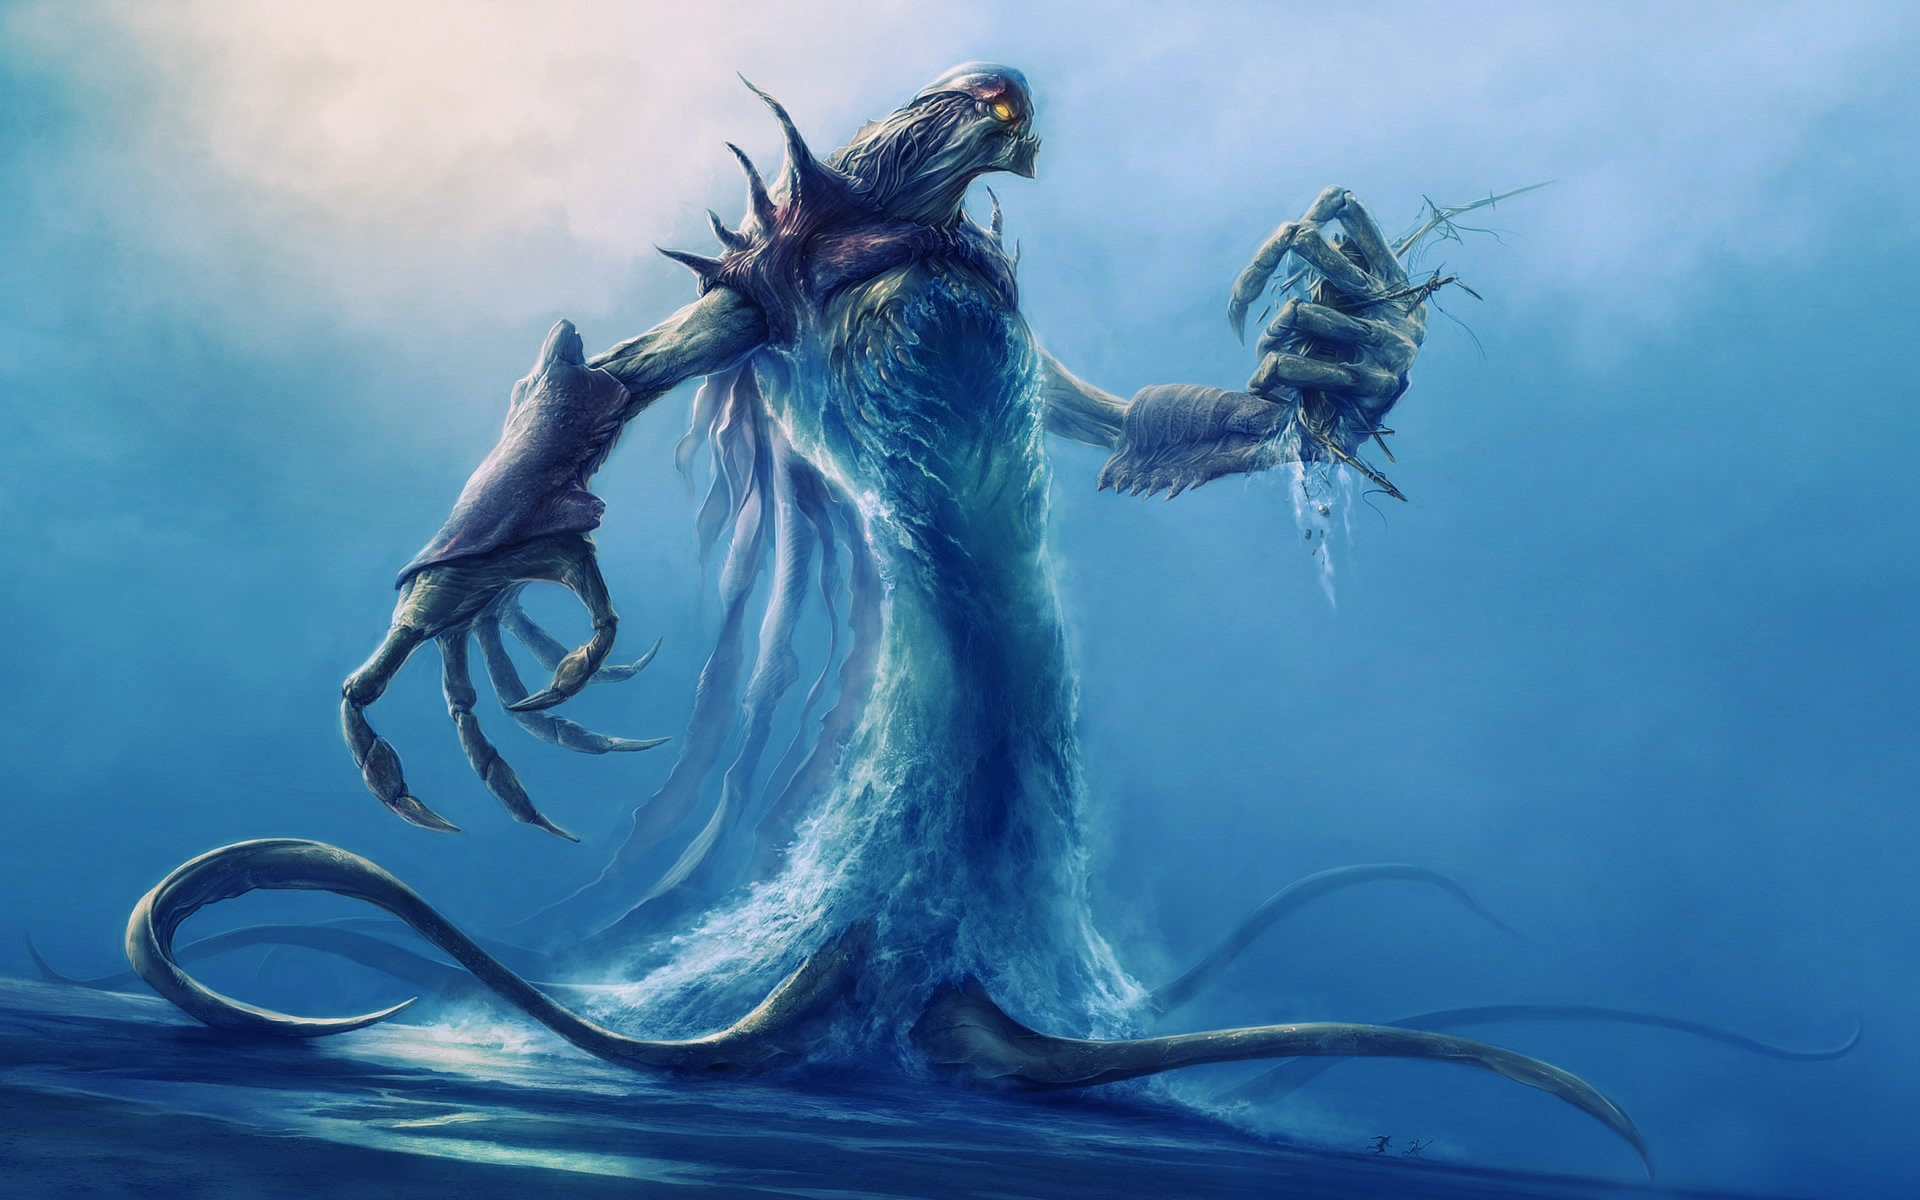 Sea Monster Art - ID: 72059 - Art Abyss